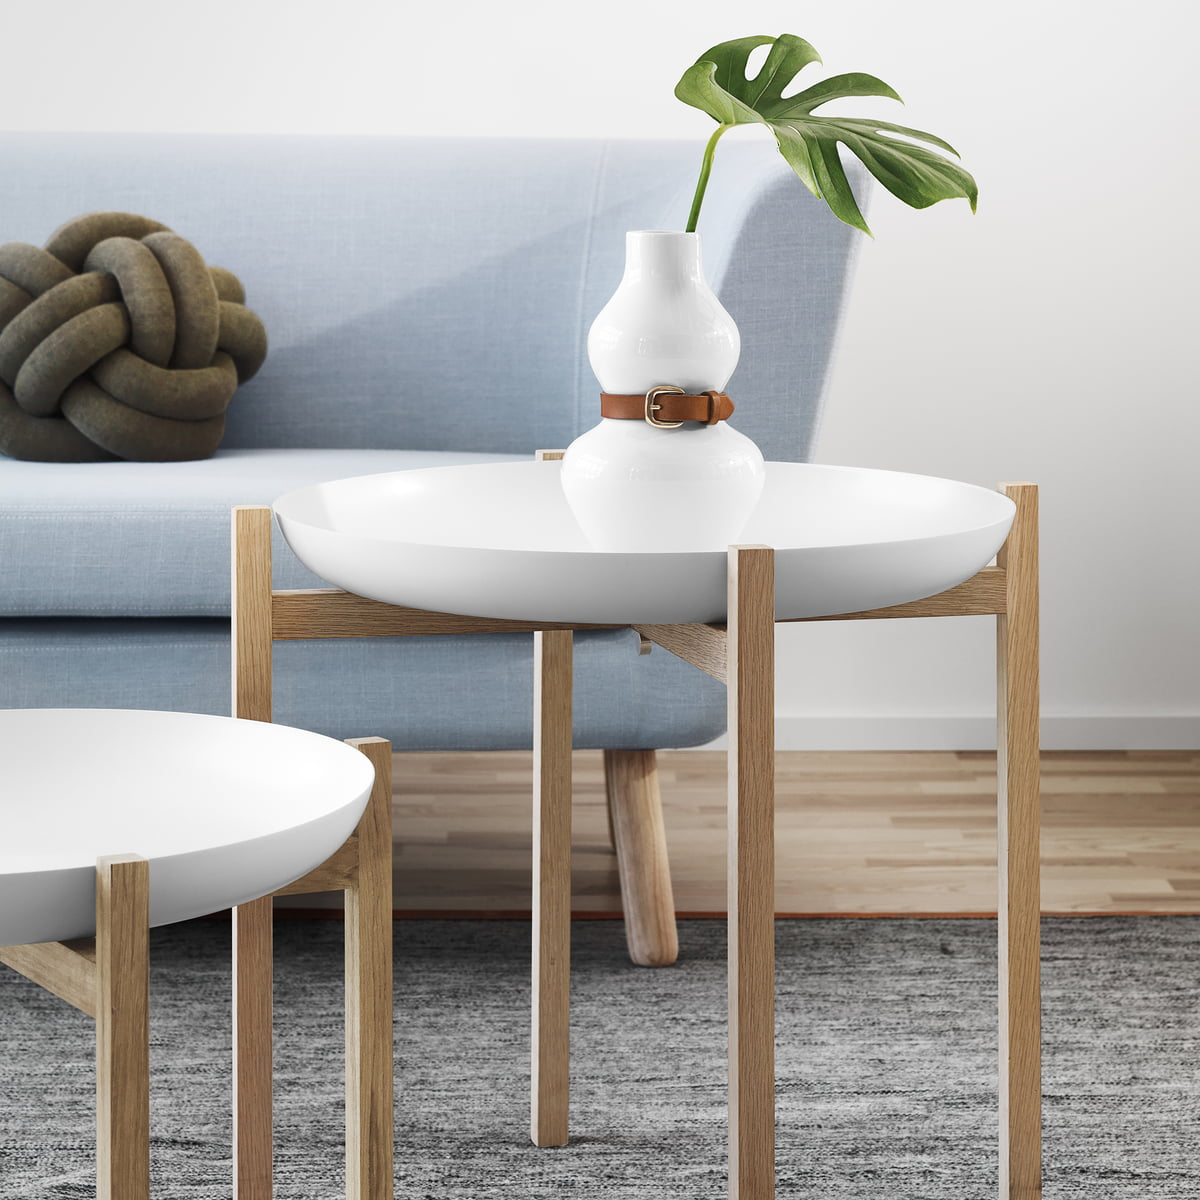 Tablo side table by design house stockholm for Couch beistelltisch